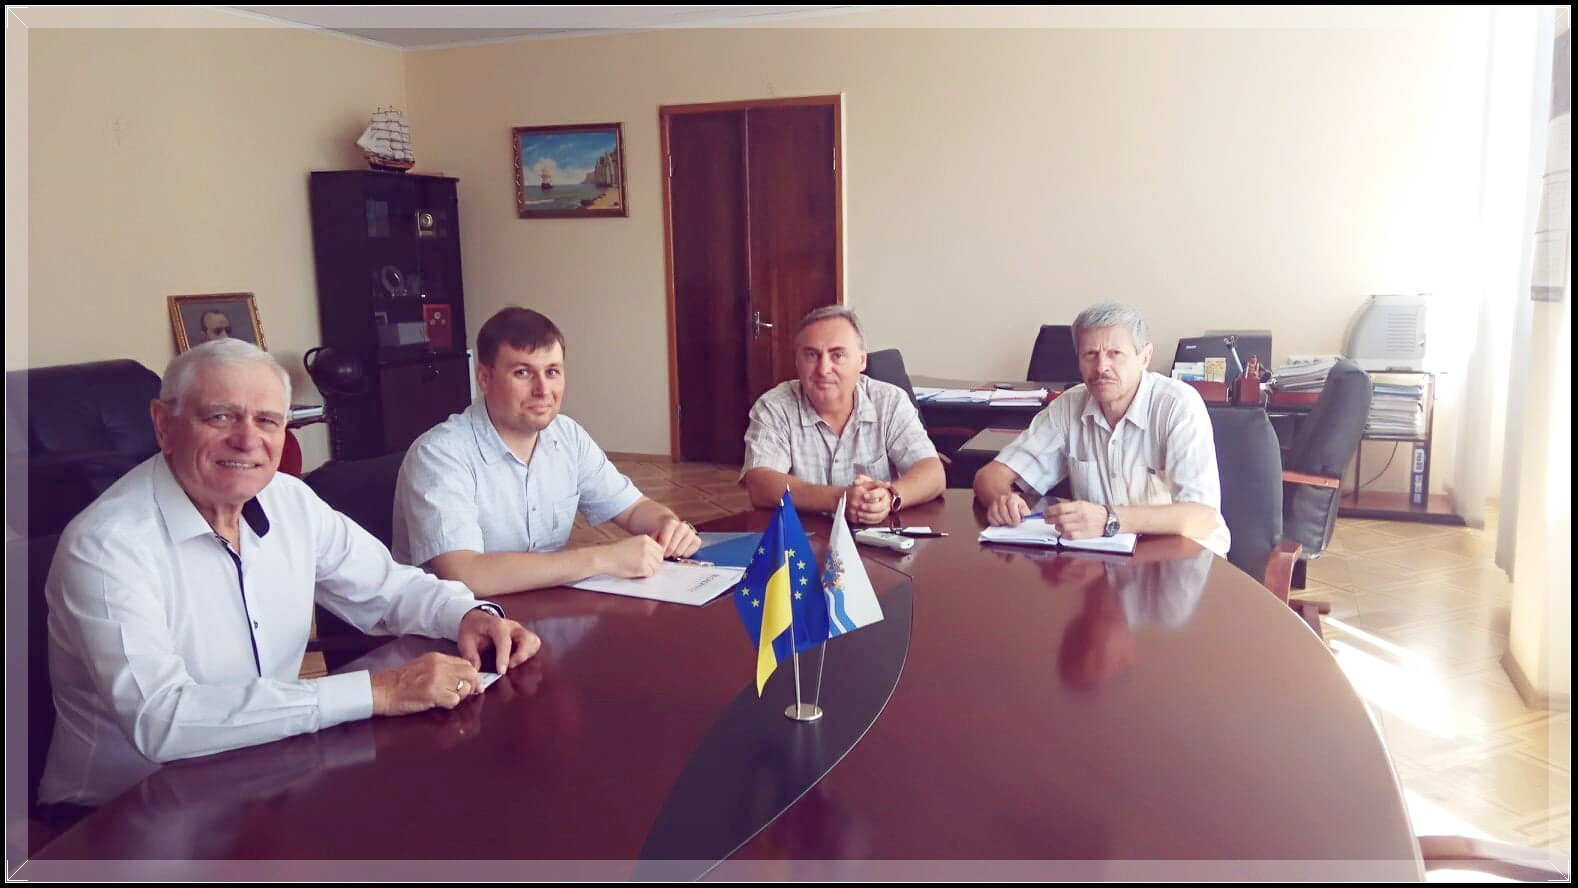 CADMATIC National University of Shipbuilding and Zaliv Ship Design sign an agreement